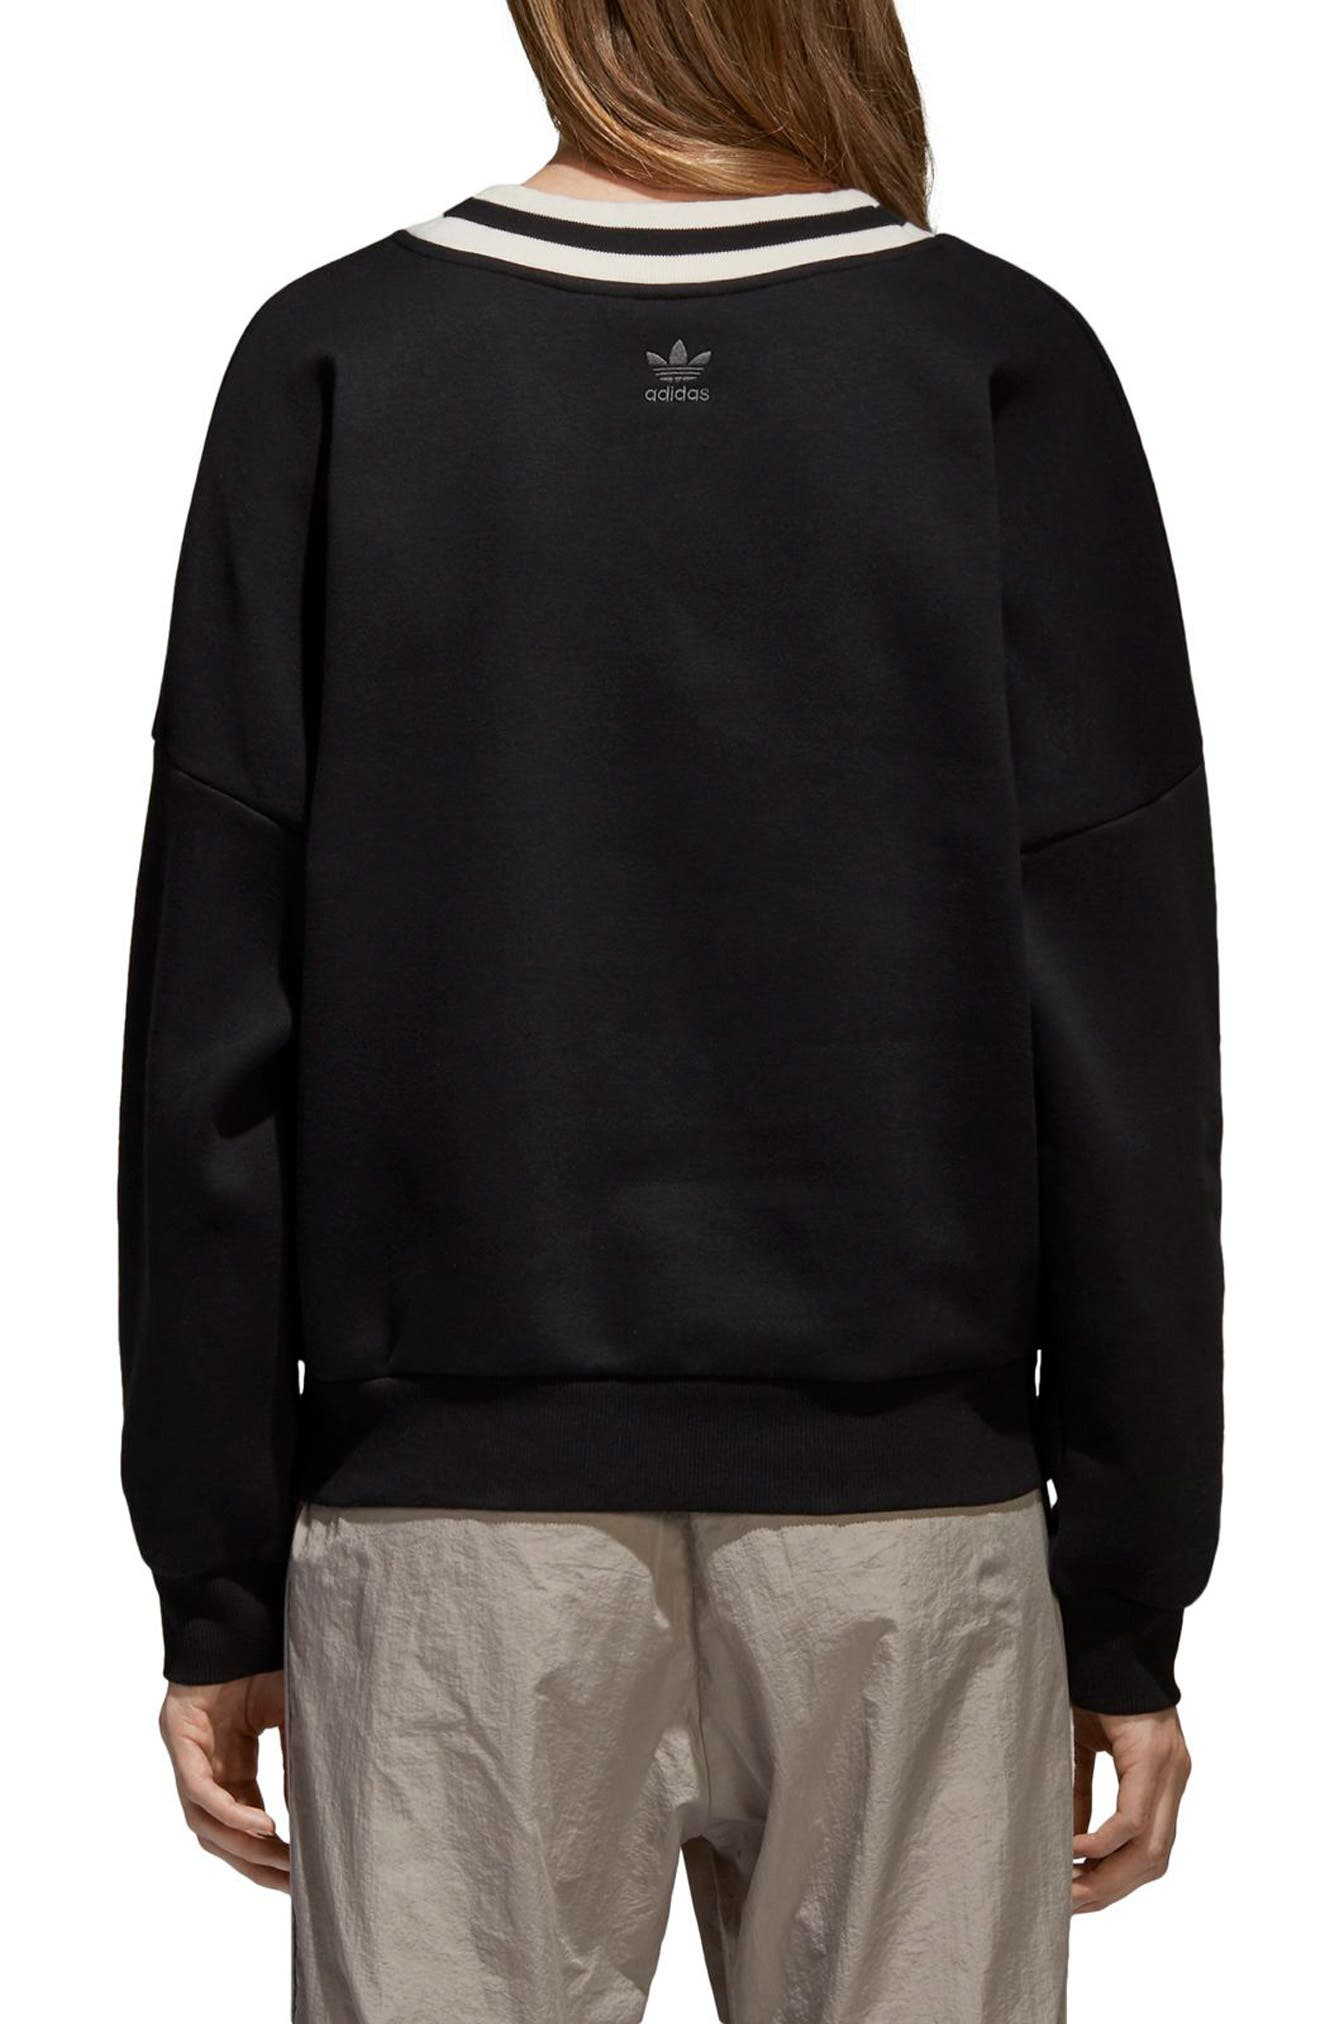 Originals Adibreak Sweatshirt,                             Alternate thumbnail 2, color,                             001